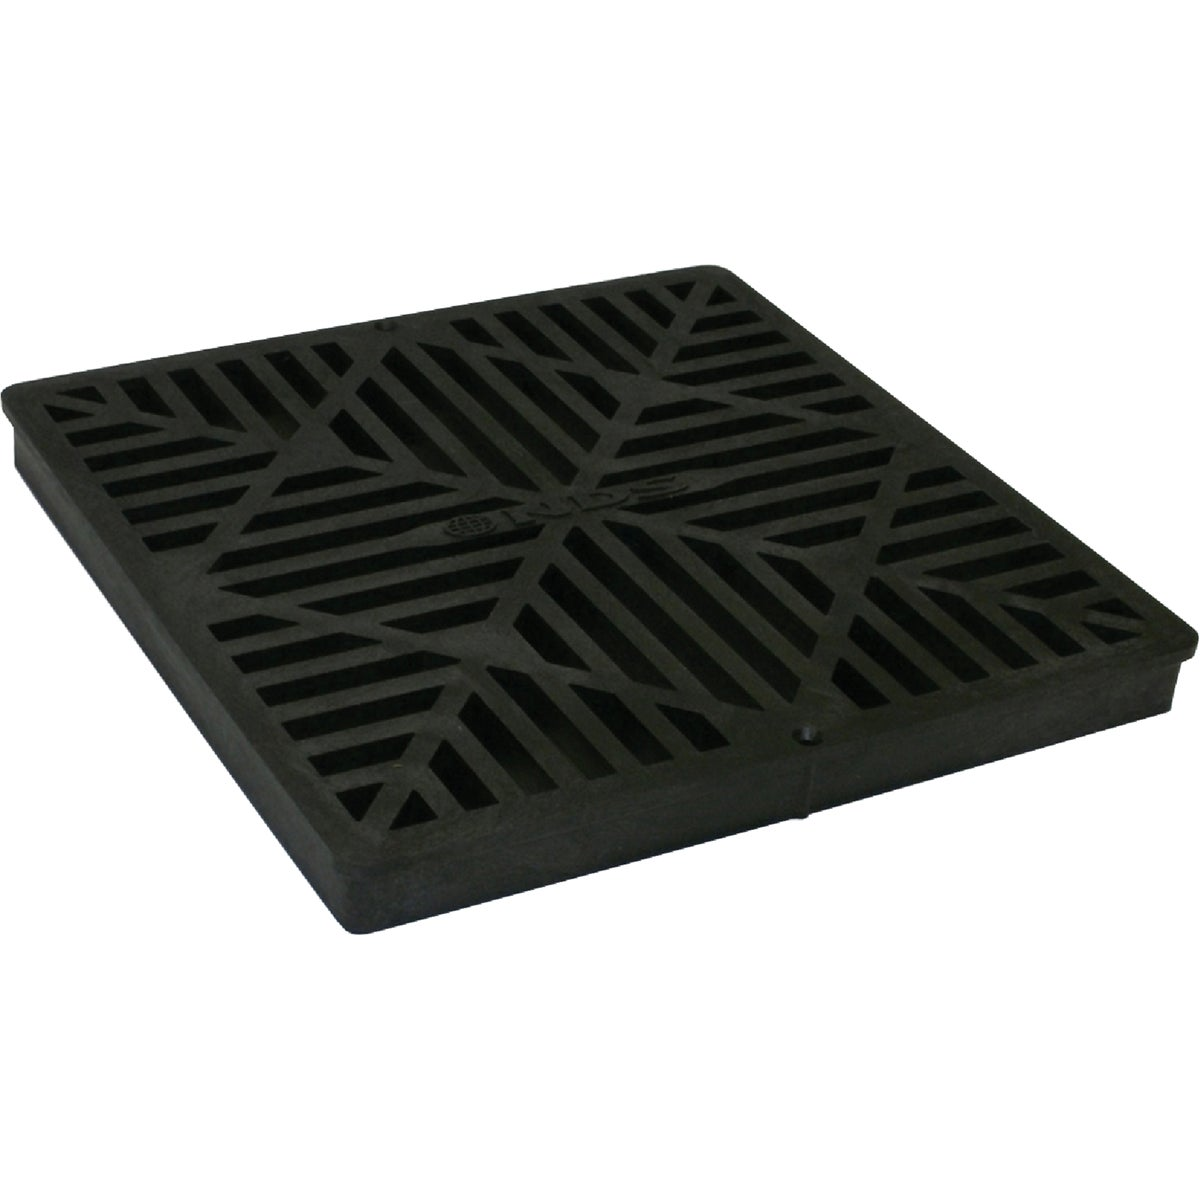 12X12 BASIN GRATE - 1211 by National Diversified